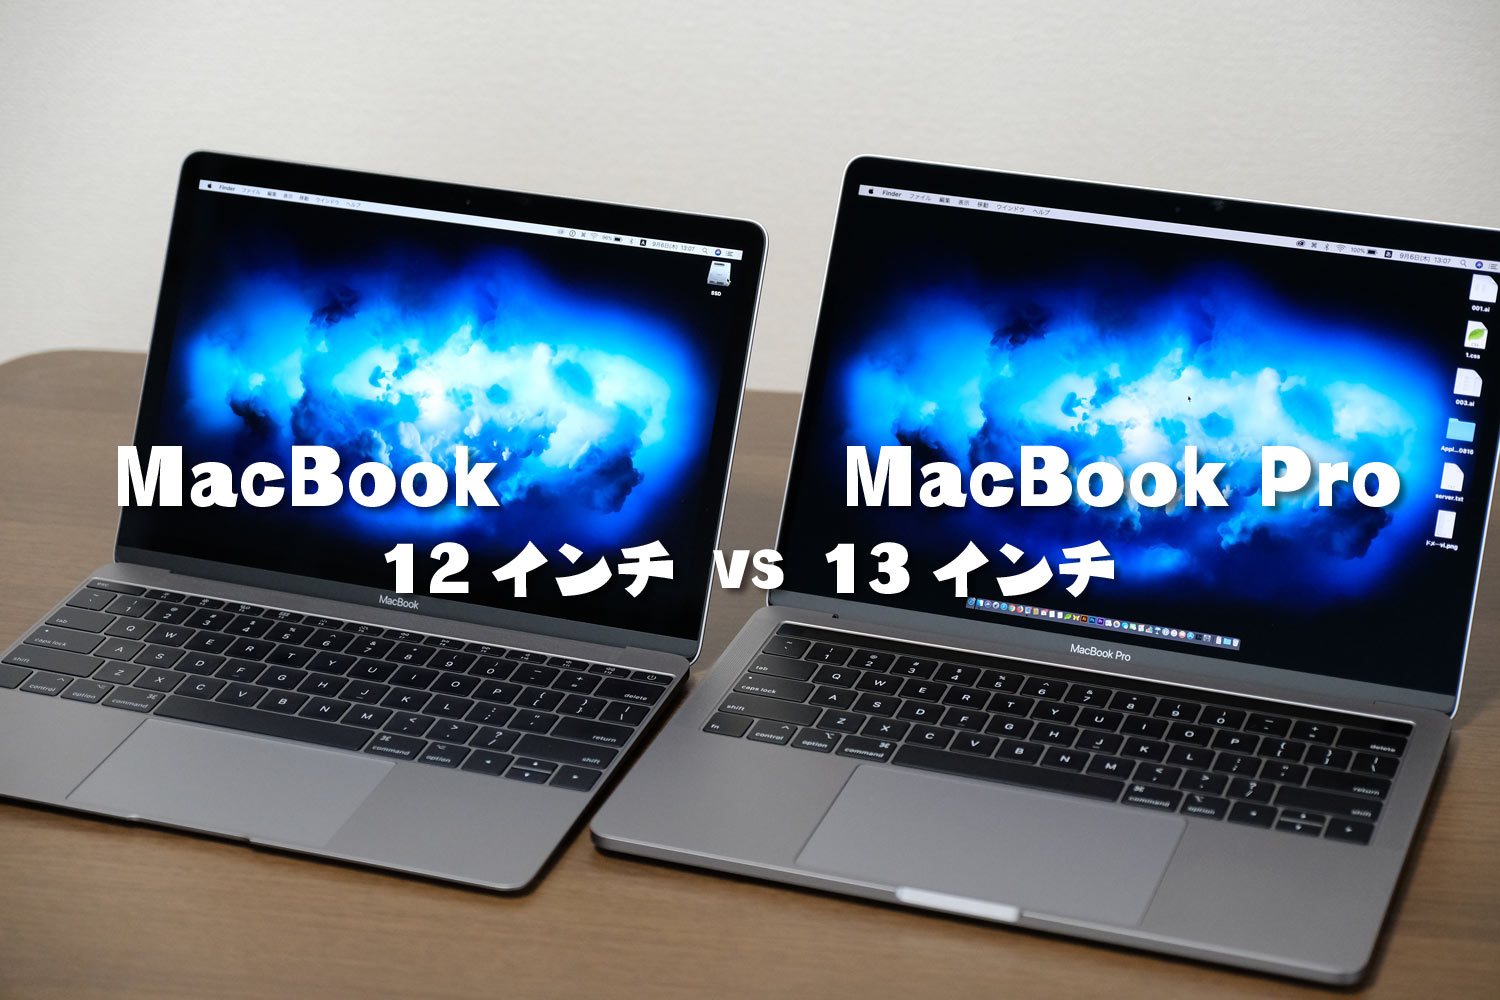 MacBook 12インチ vs MacBook Pro 13インチ